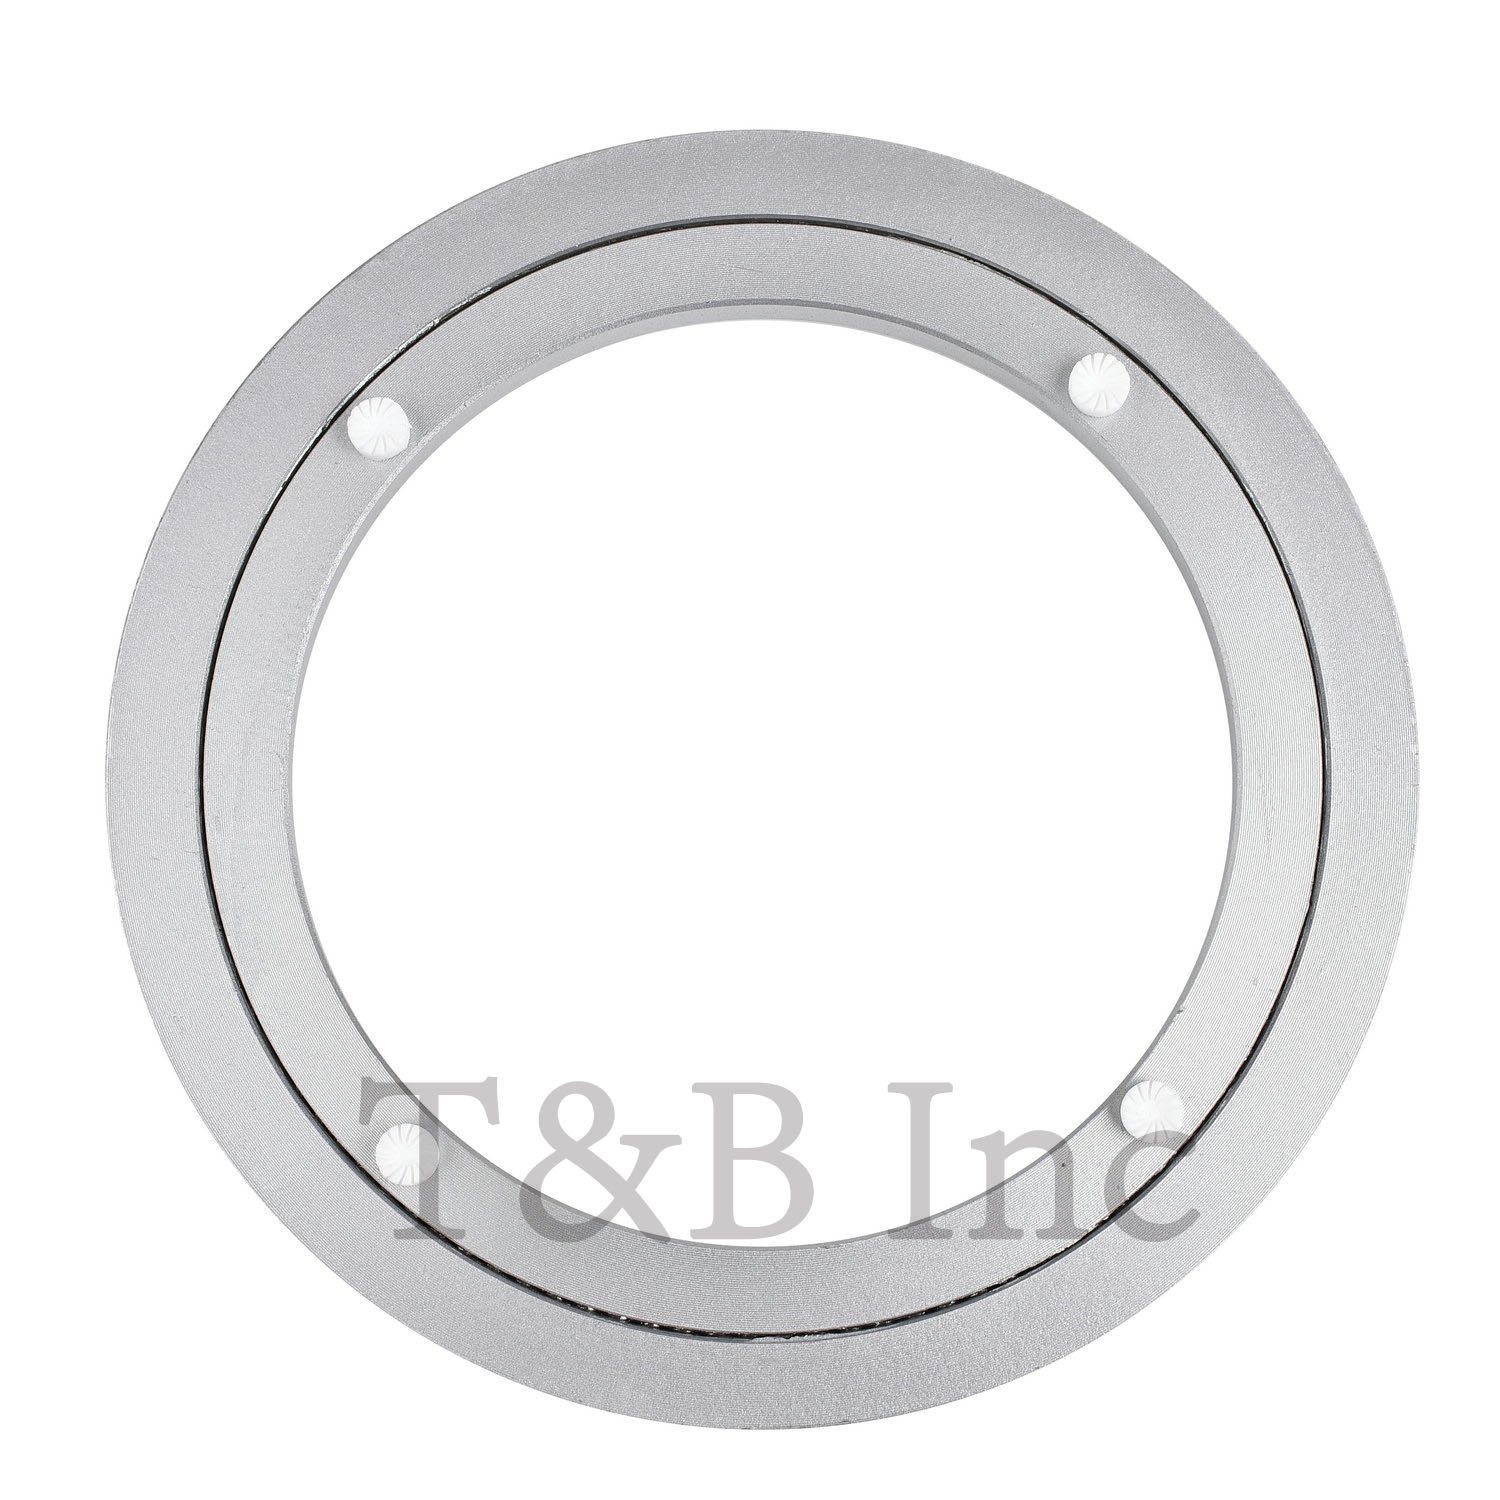 200mm Lazy Susan 8 Inch Aluminum Bearing Metal Rotating Turntable Bearings Swivel Plate Hardware For Dining-table